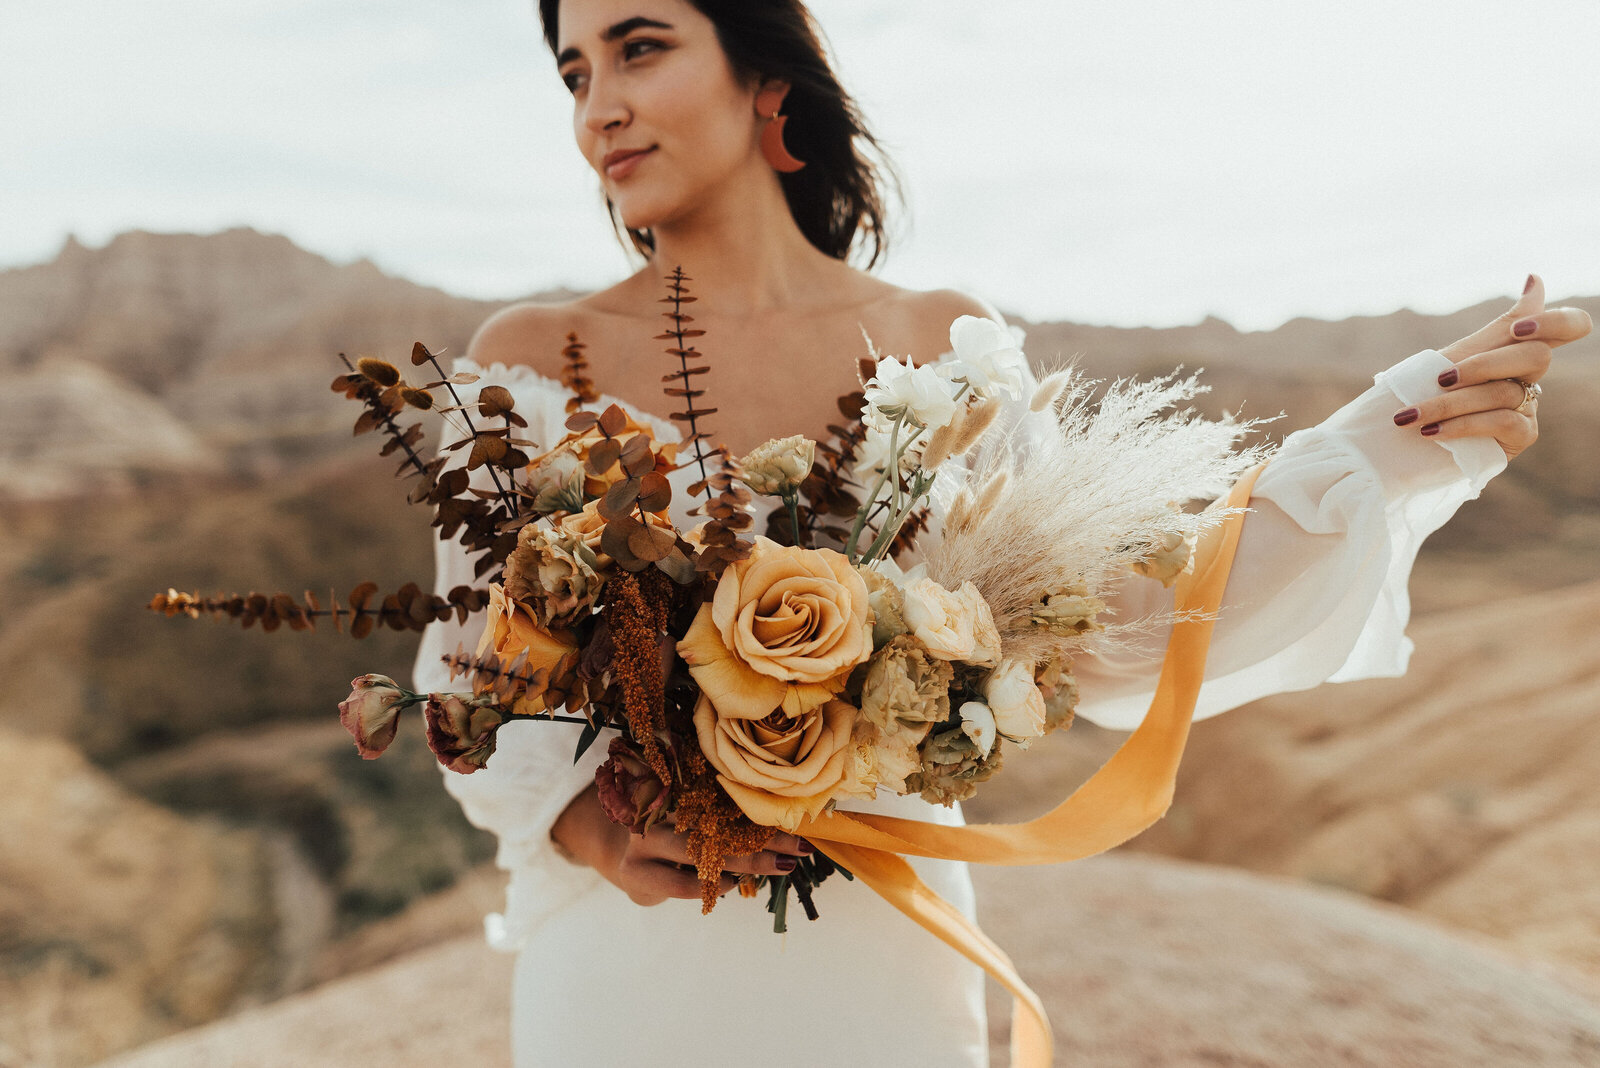 Bride holding her bouquet standing in the Badlands